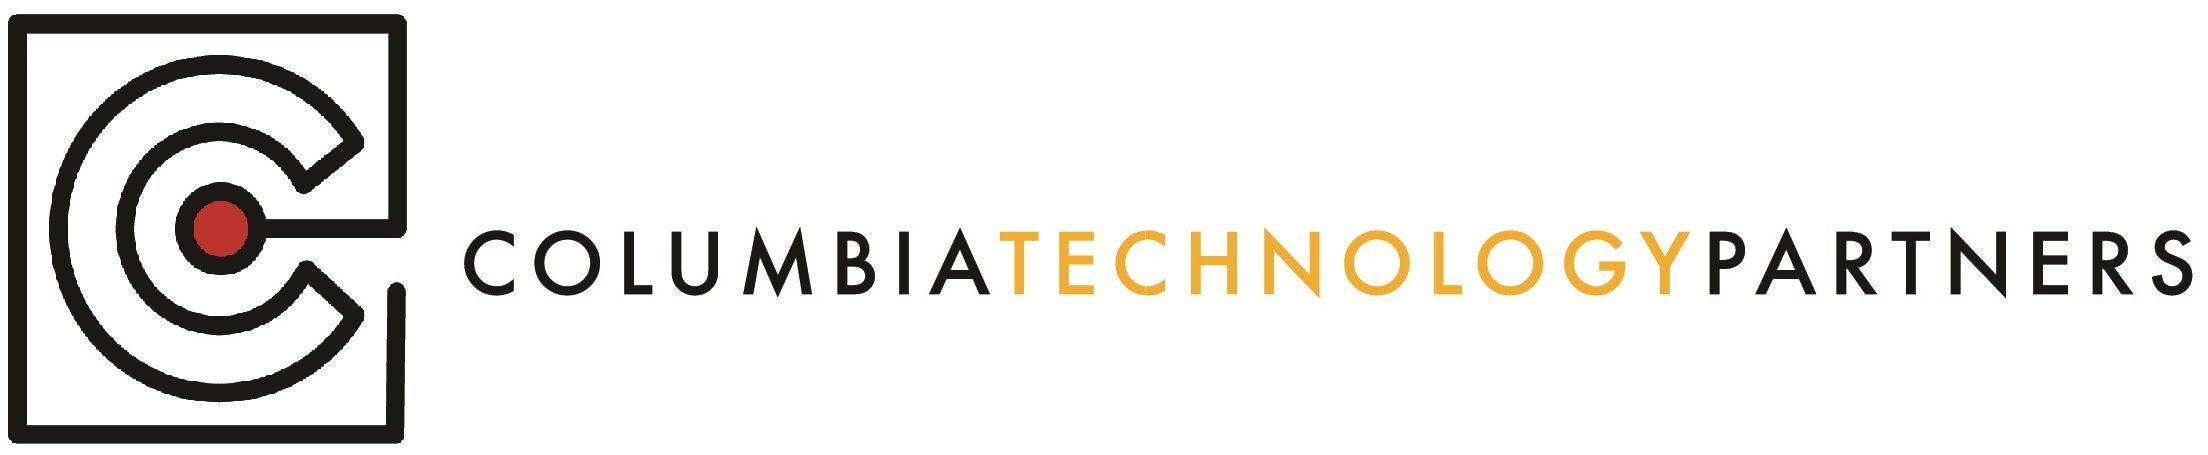 Columbia Technology Partners